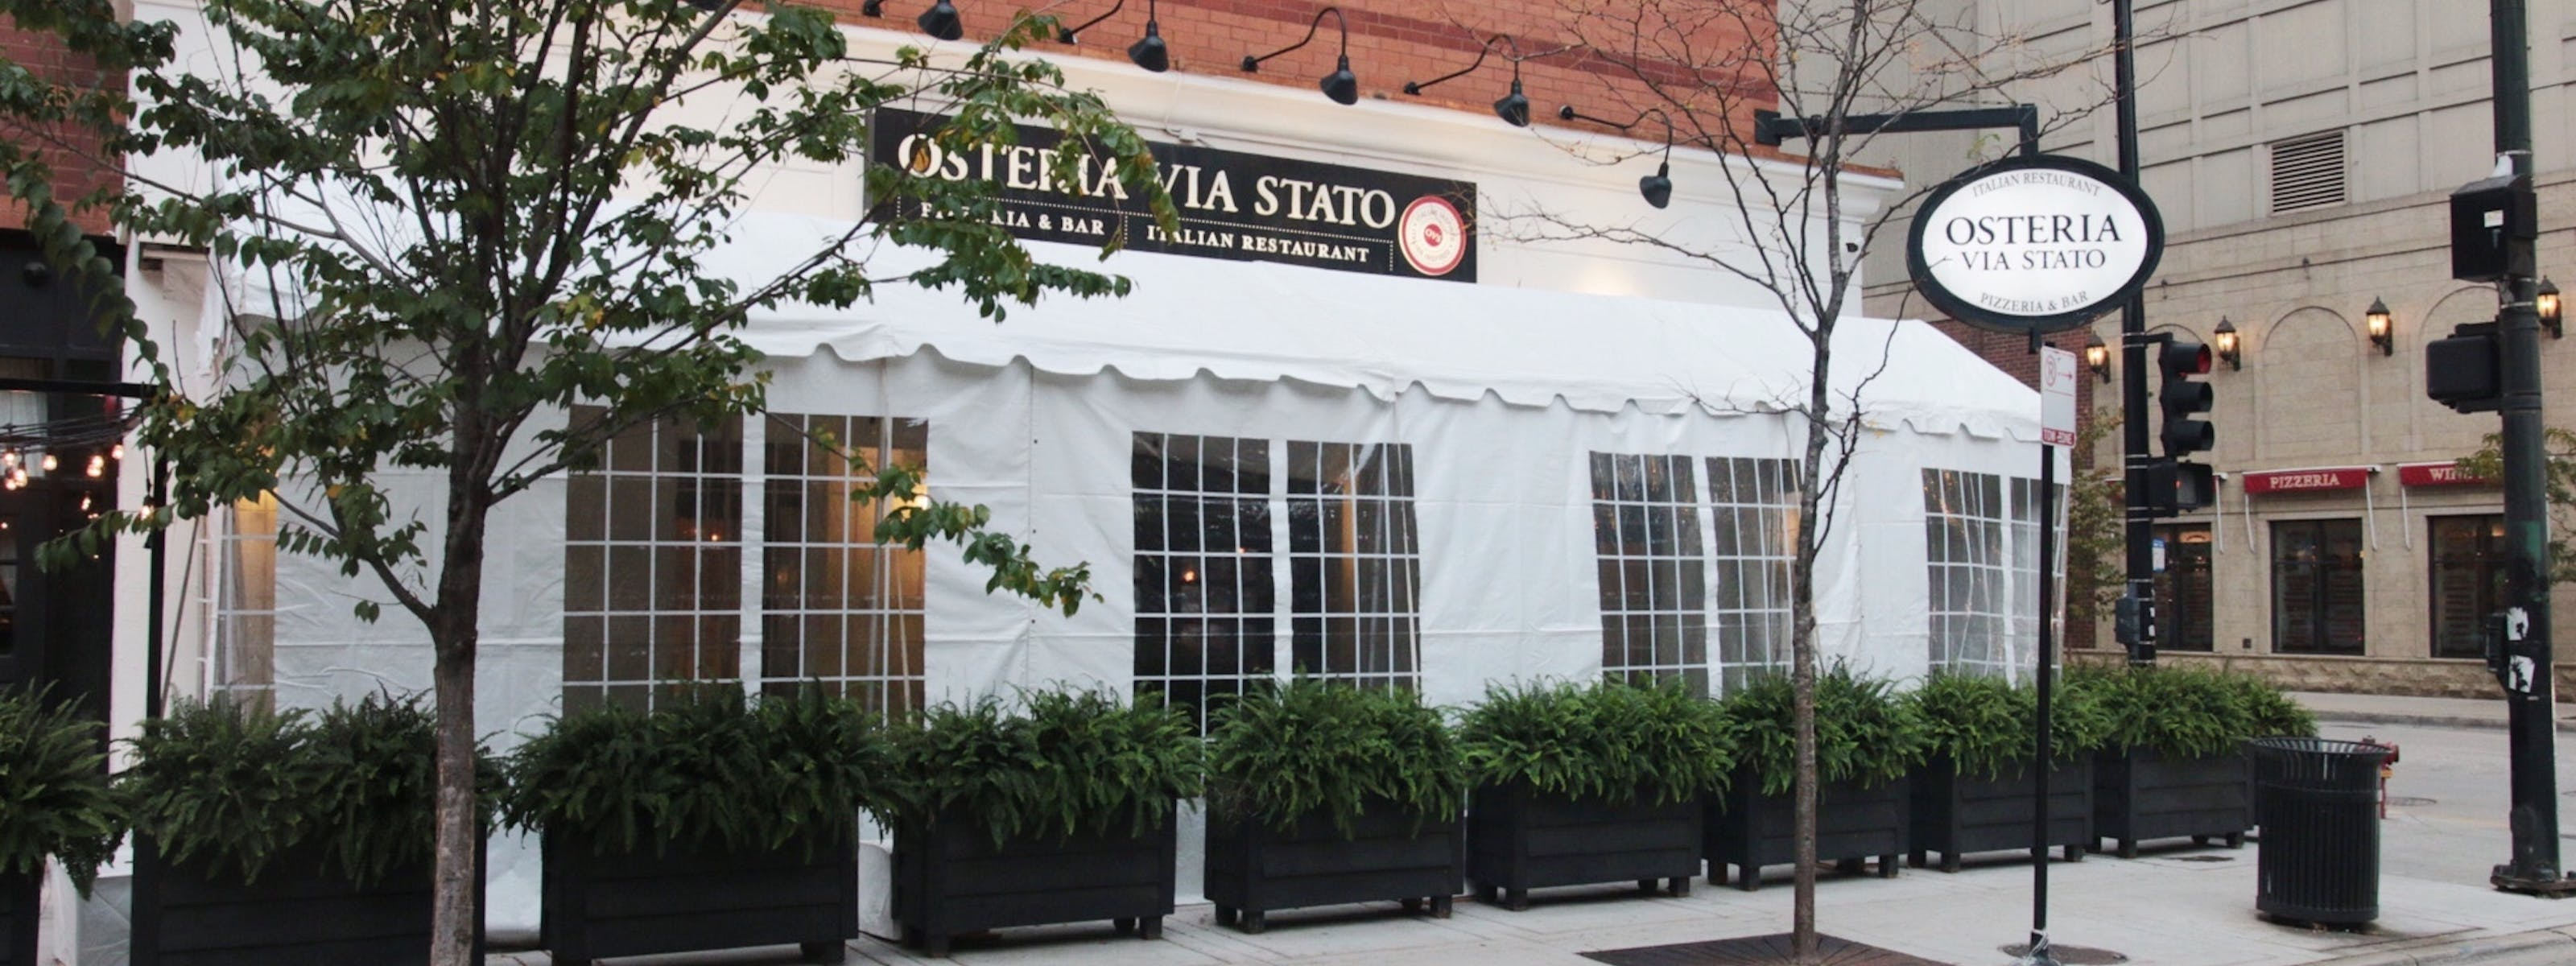 Chicago Restaurants With Tents, Domes, And Greenhouses For Outdoor Dining